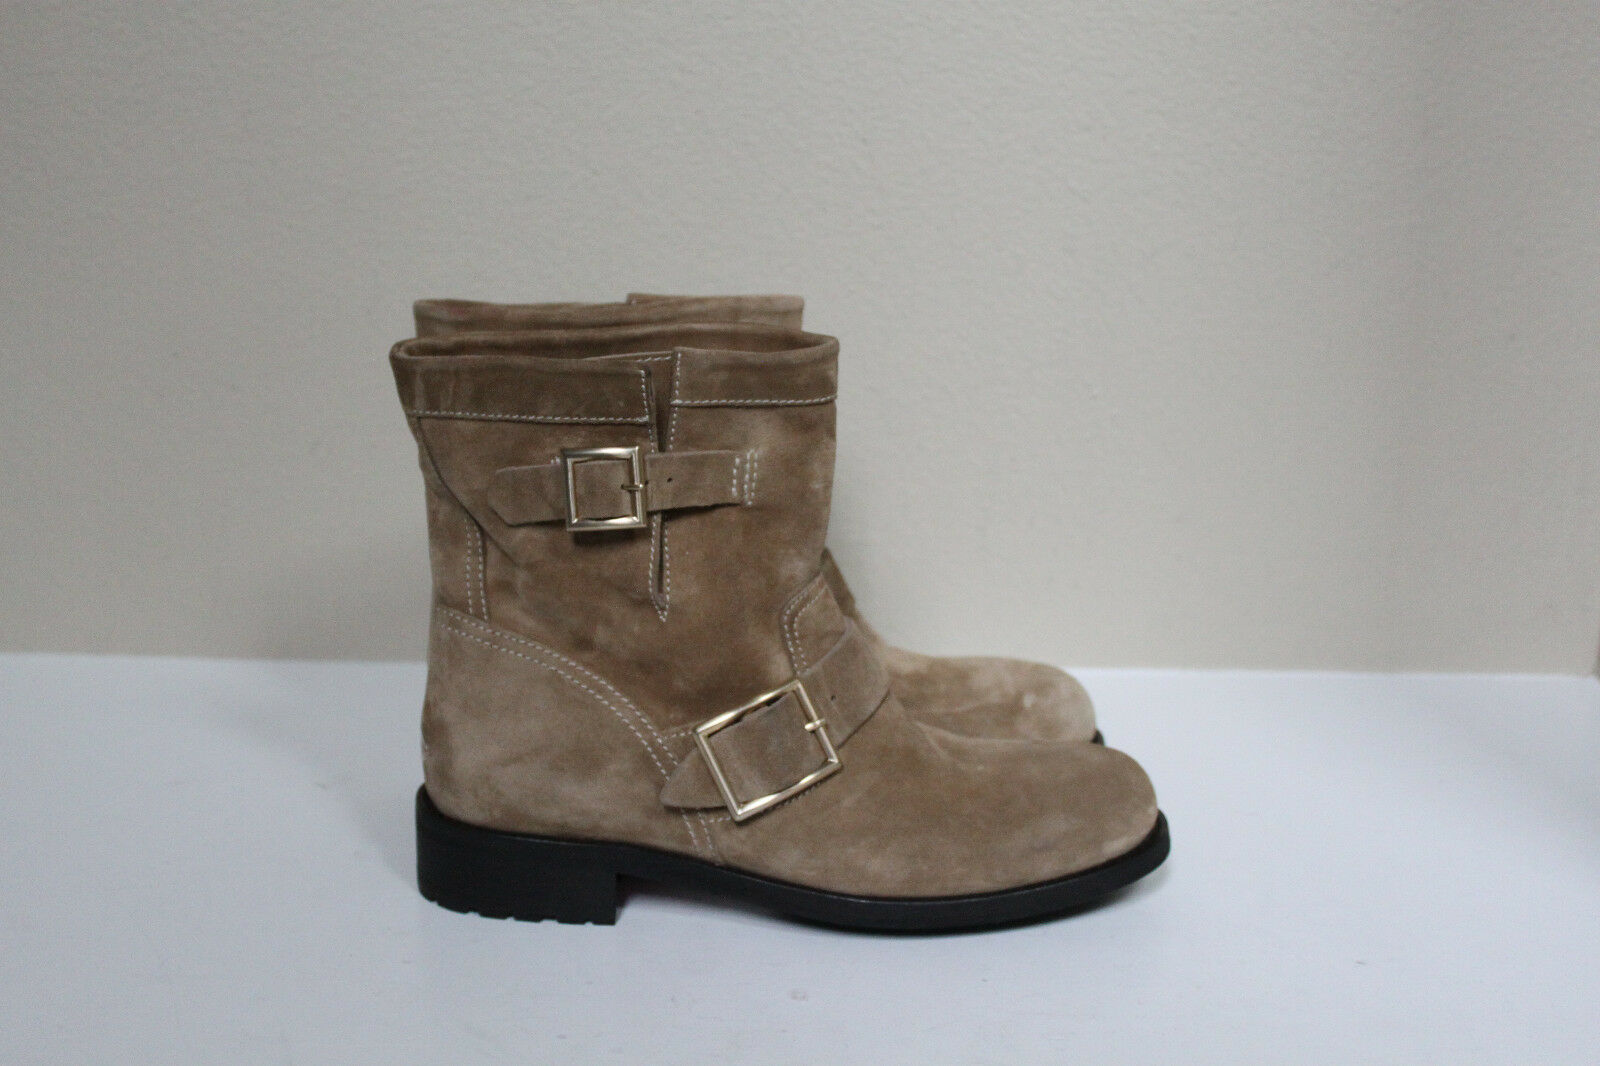 sz 9 / 39 Jimmy Choo Youth Taupe Suede Short Buckle Biker Ankle Boot Shoes